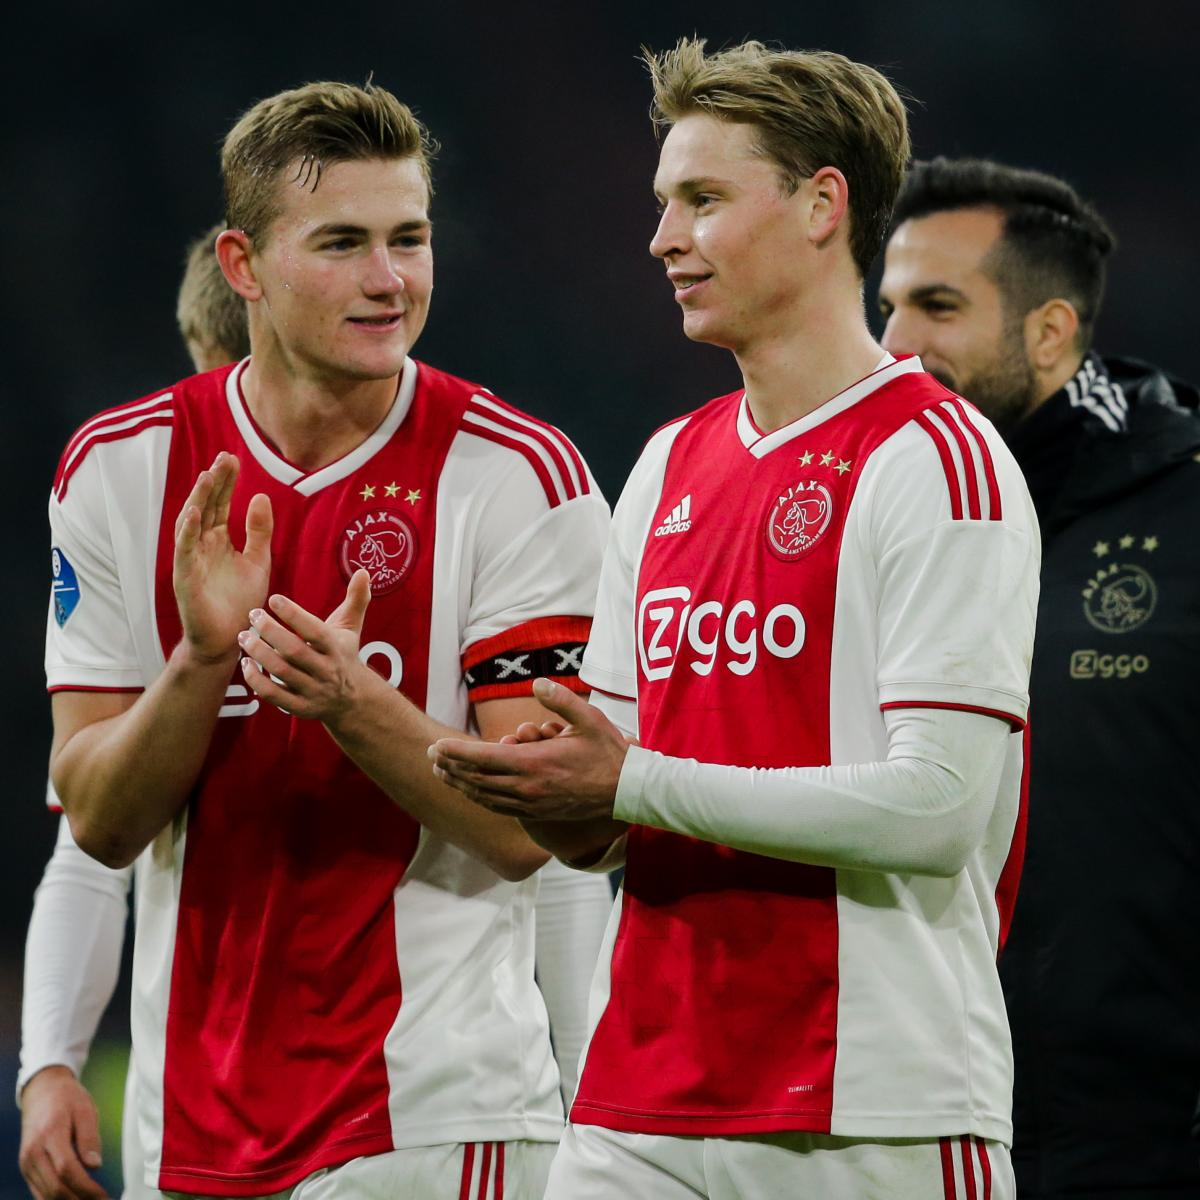 Champions League 2019 Round Of 16 Leg 2 Live Stream Tv: Ajax Vs. Real Madrid: Preview, Live Stream, TV Info For